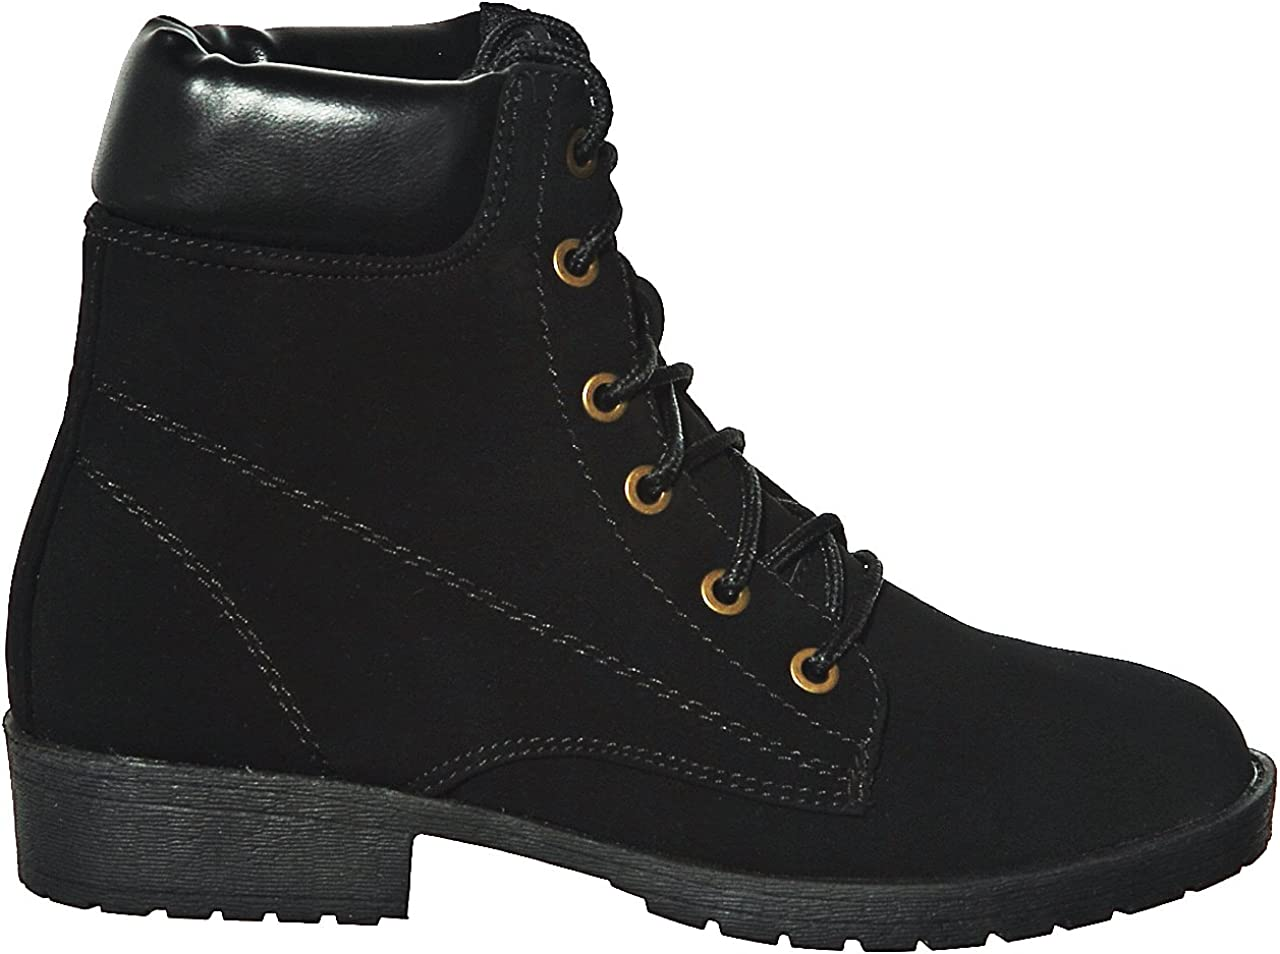 shoewhatever New! Lace up Ankle Boots